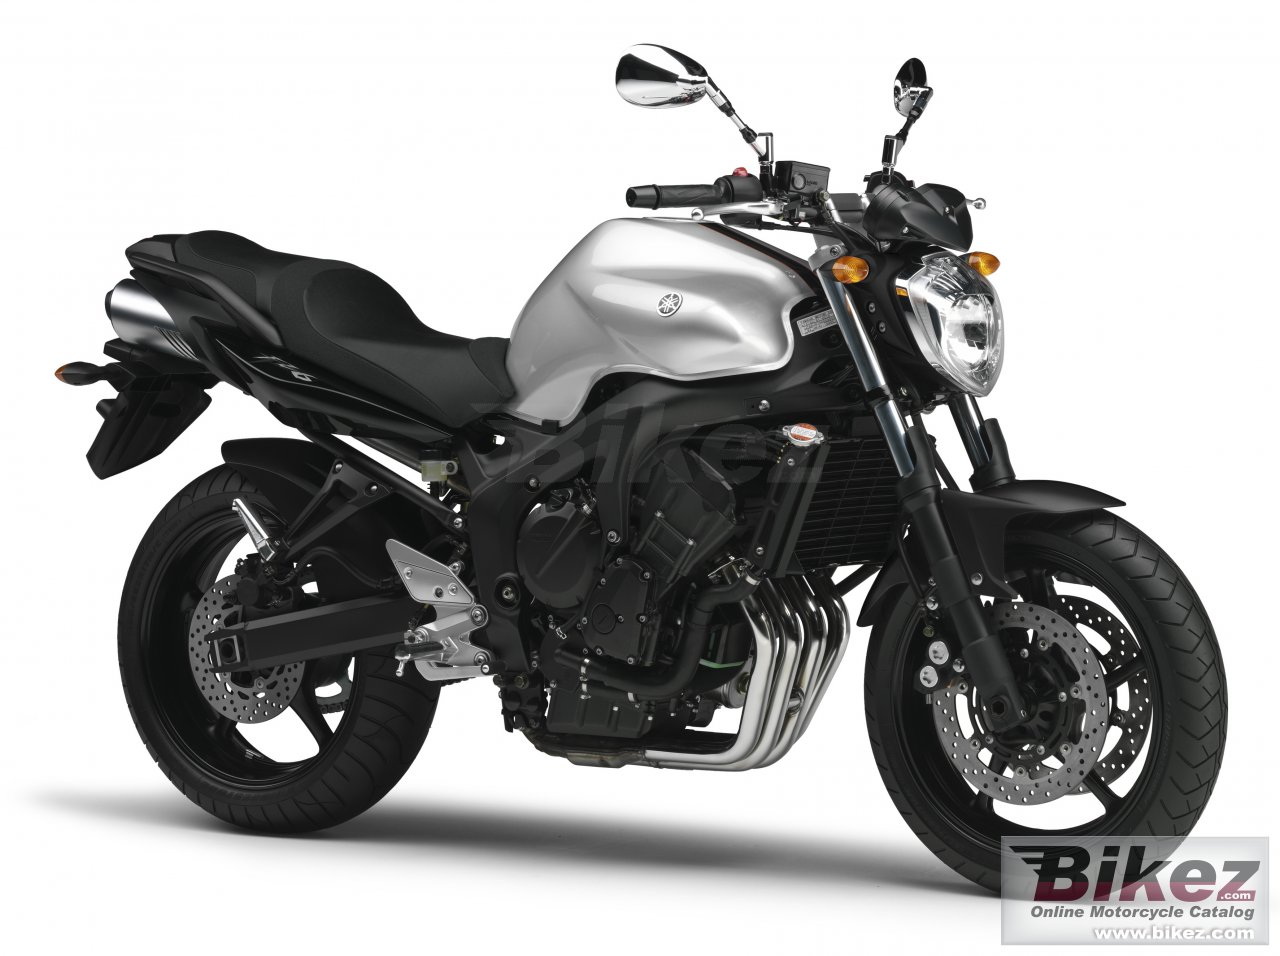 Big Yamaha fz6 s2 picture and wallpaper from Bikez.com